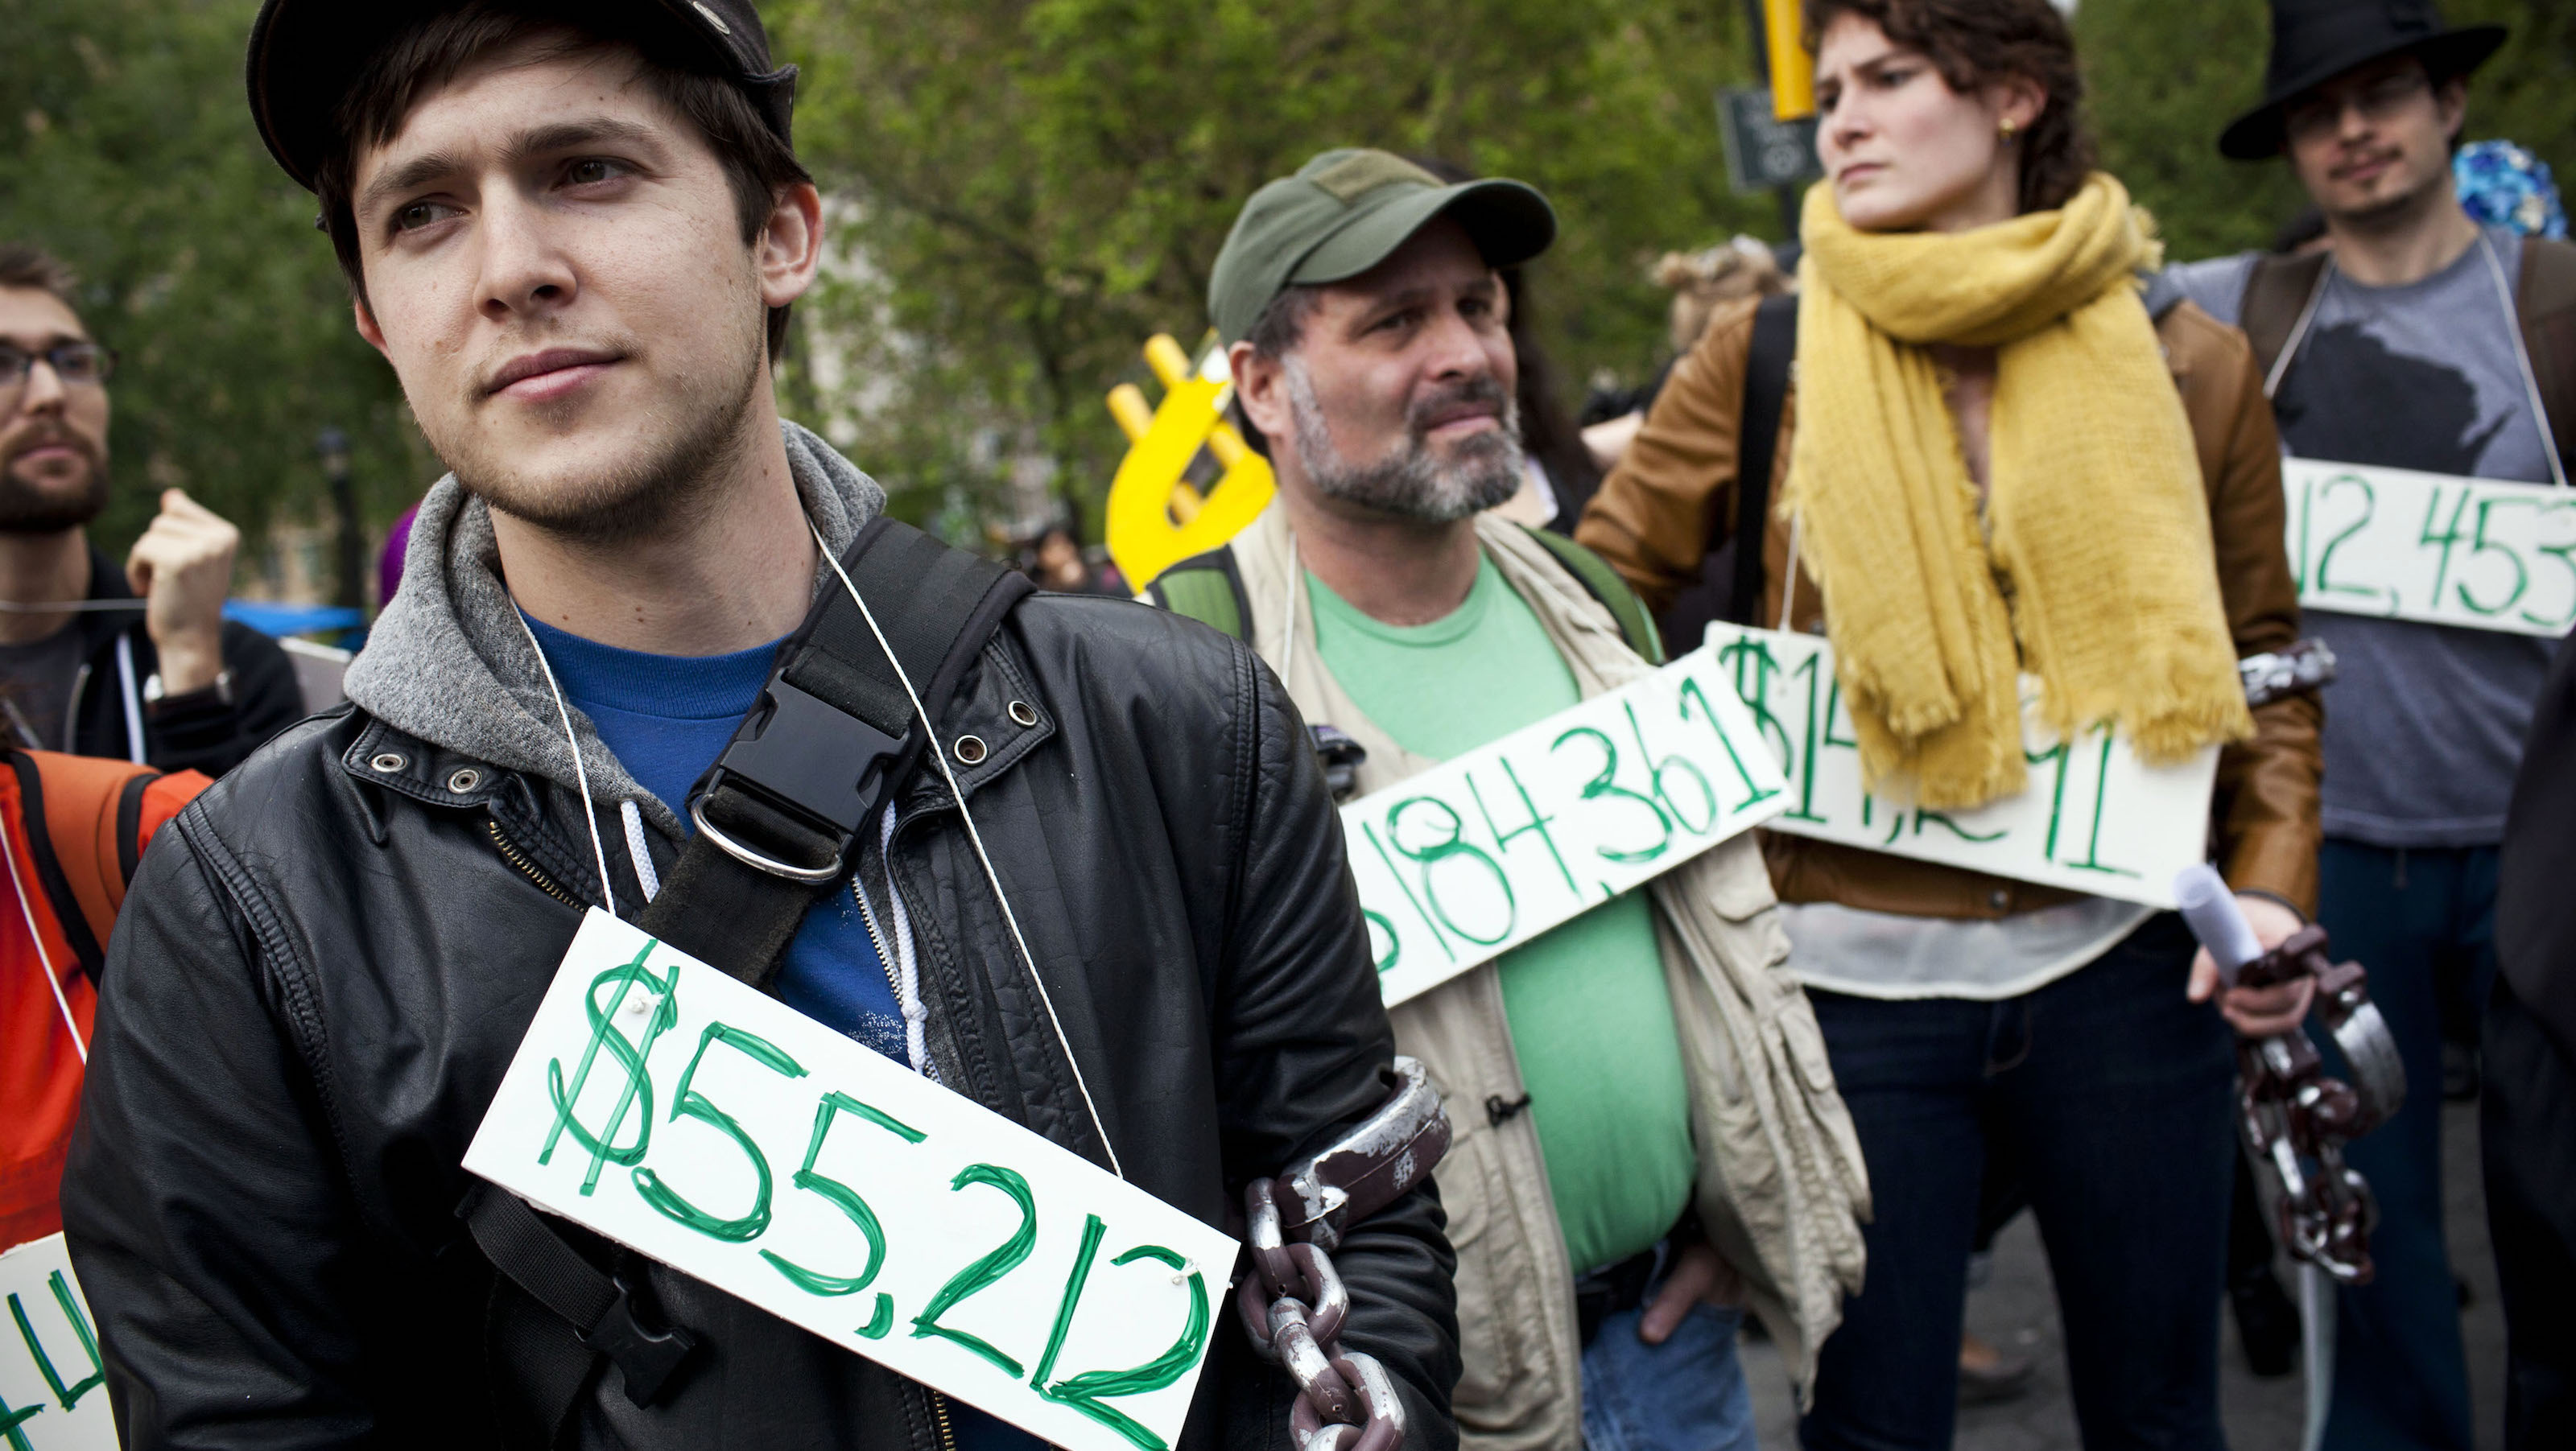 Occupy Wall Street demonstrators participating in a street-theater production wear signs around their neck representing their student debt during a protest against the rising national student debt in Union Square, in New York, April 25, 2012. The protest eventually marched to Wall Street; two people were arrested during the protest. REUTERS/Andrew Burton (UNITED STATES - Tags: CIVIL UNREST EDUCATION) - RTR3186L